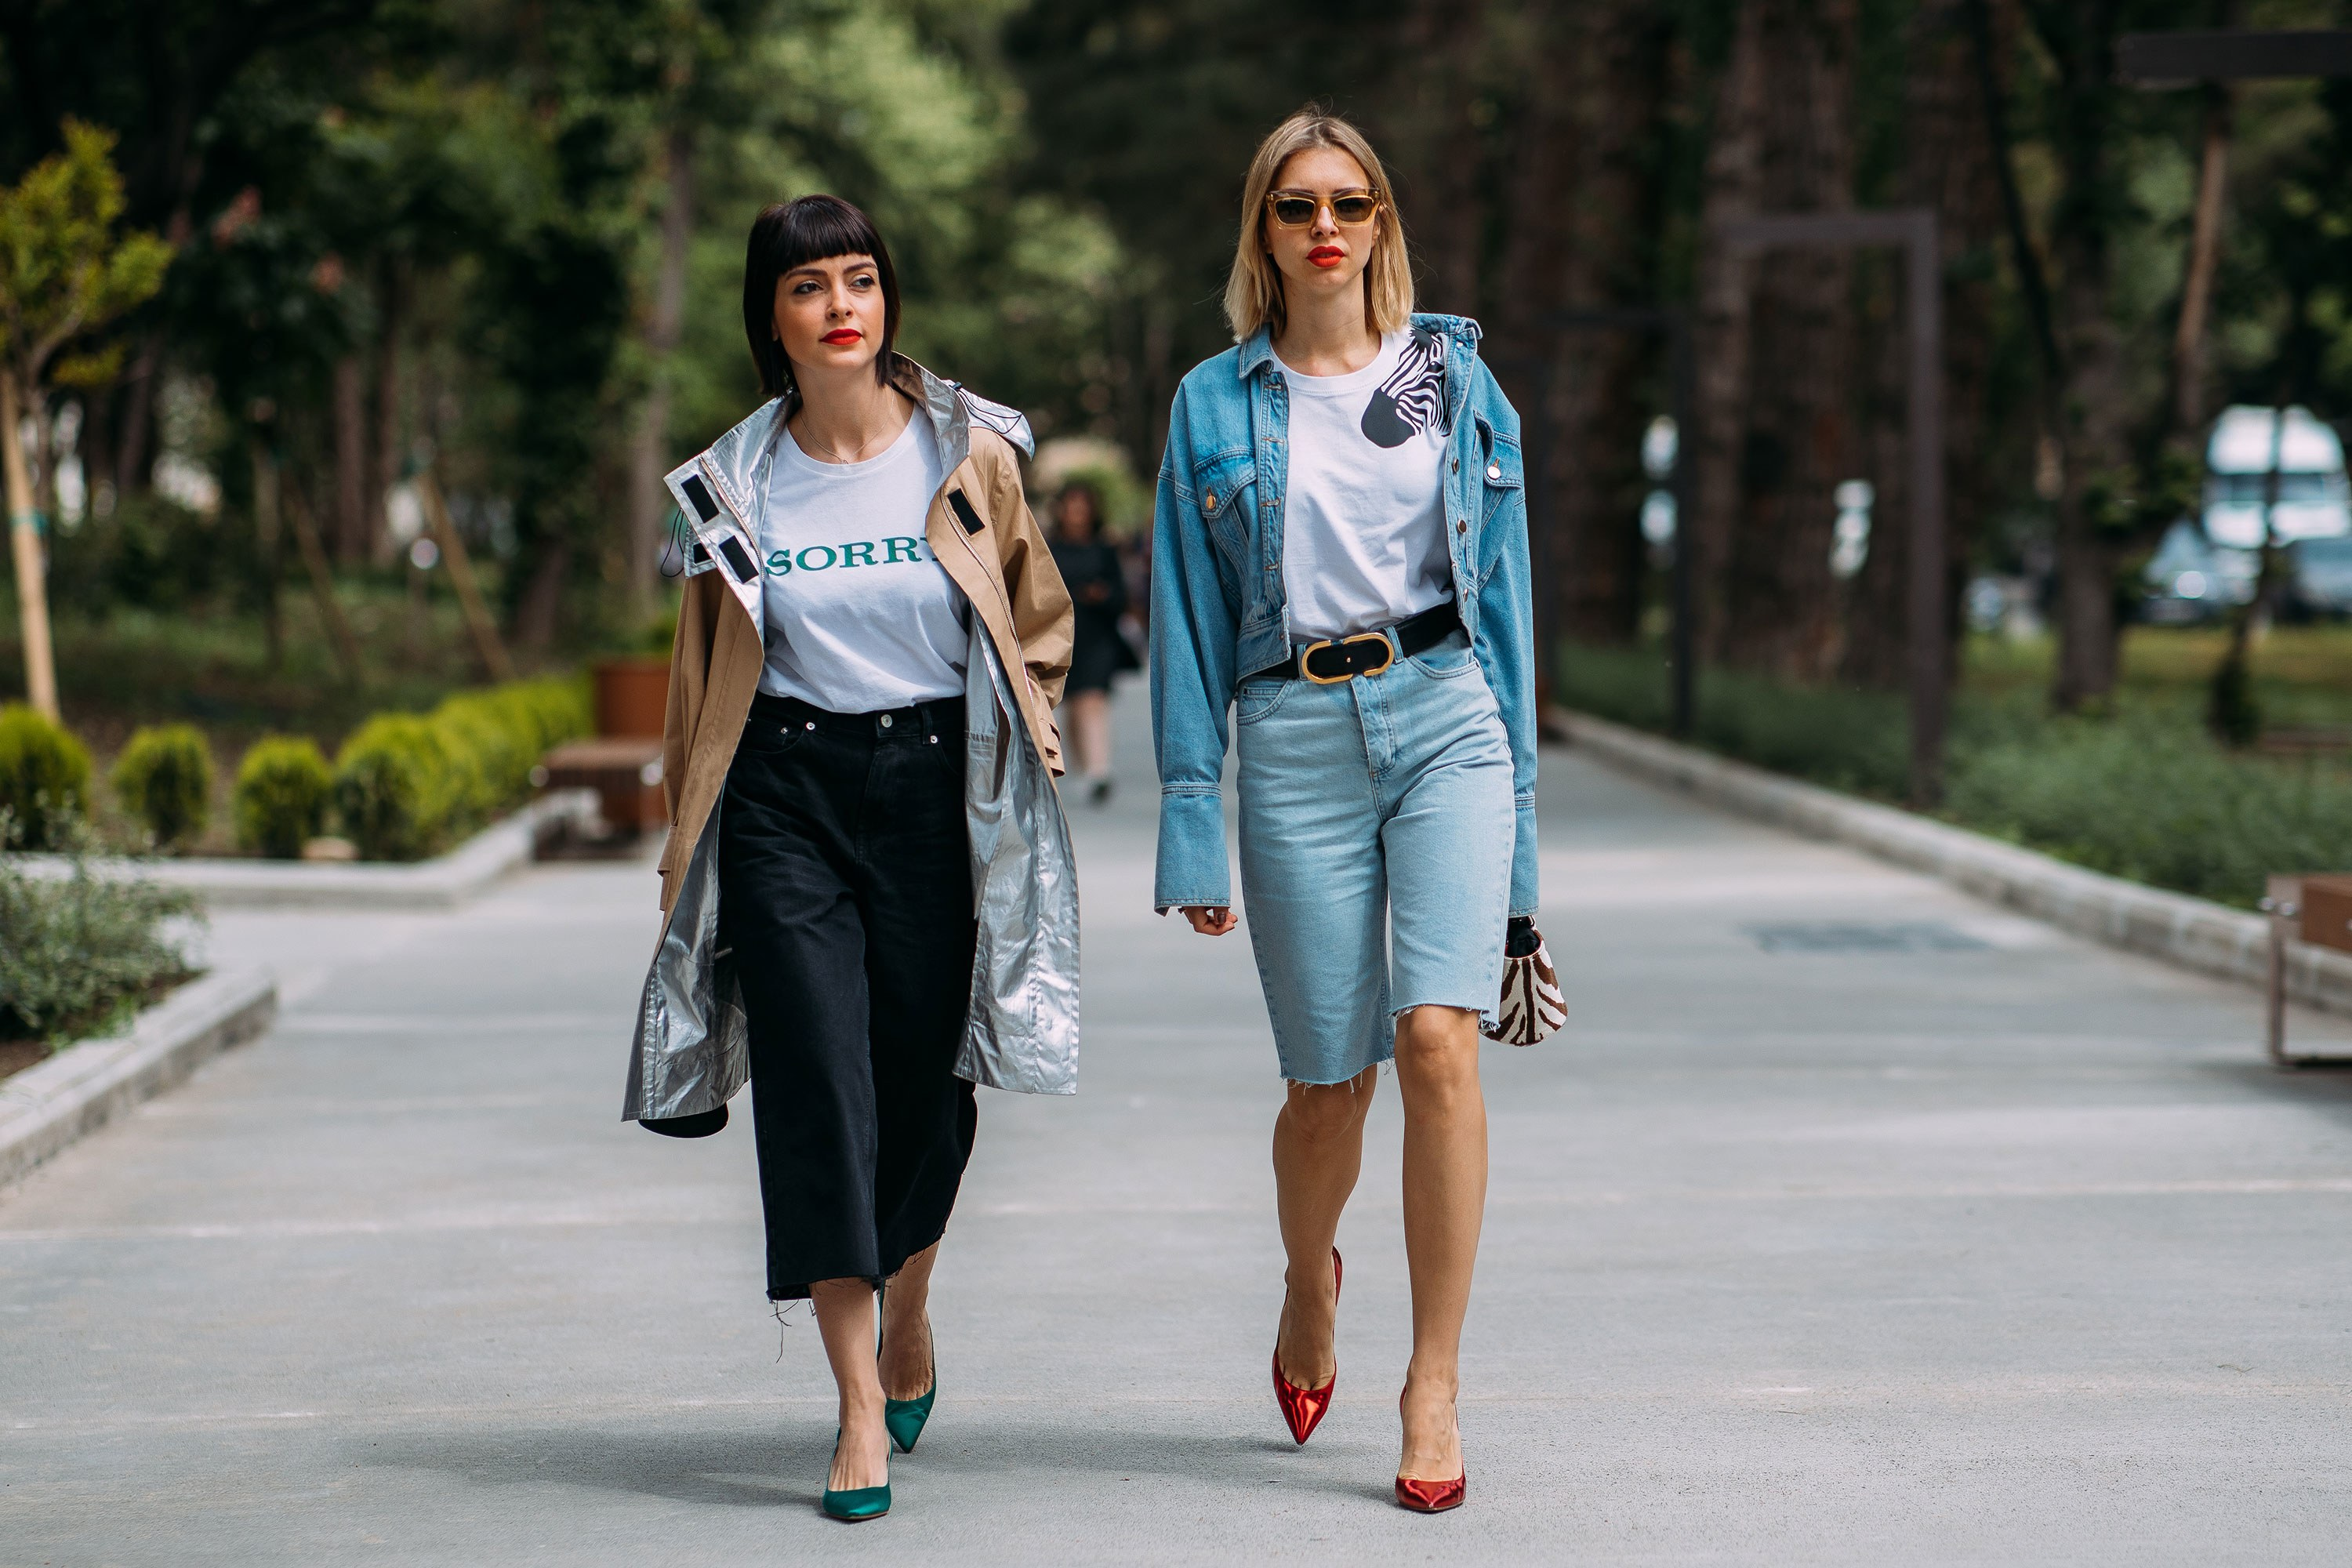 Vogue Presents Best Street Style Looks From Tbilisi Fashion Week